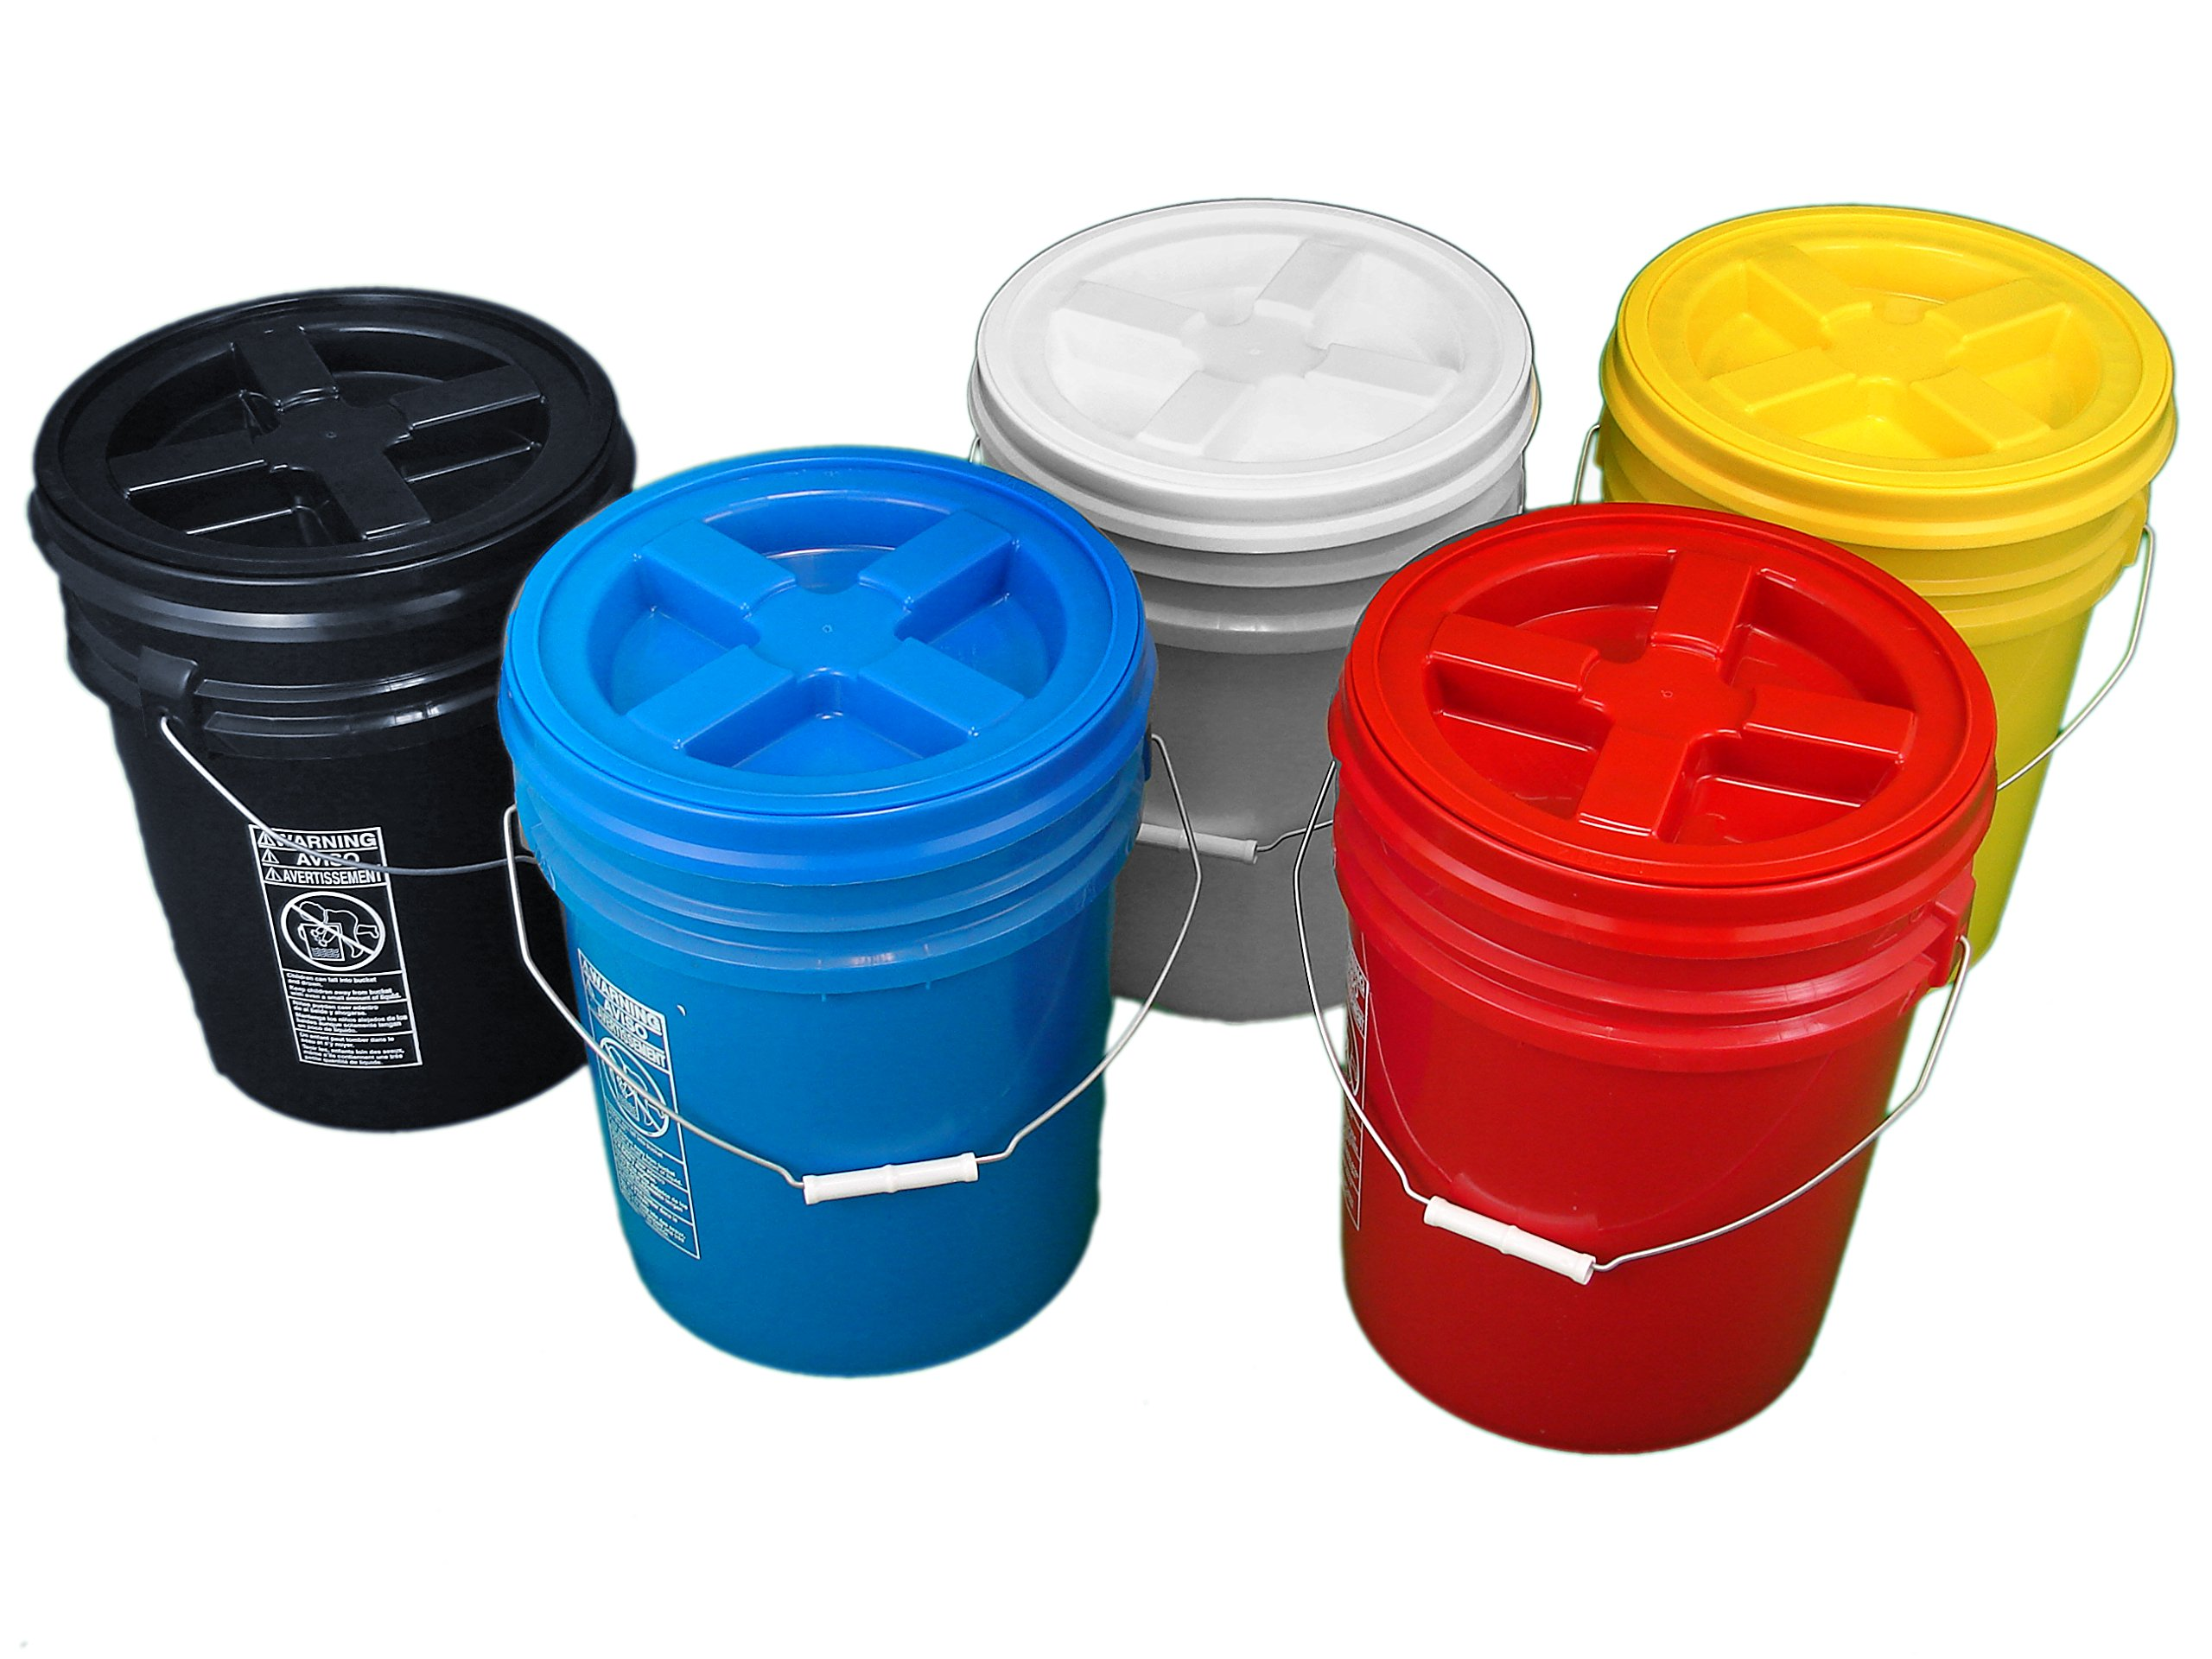 Bucket Kit, Five Colored 5 Gallon Buckets with Matching Gamma Seal Lids (one each: blue, red, yellow, white, black)